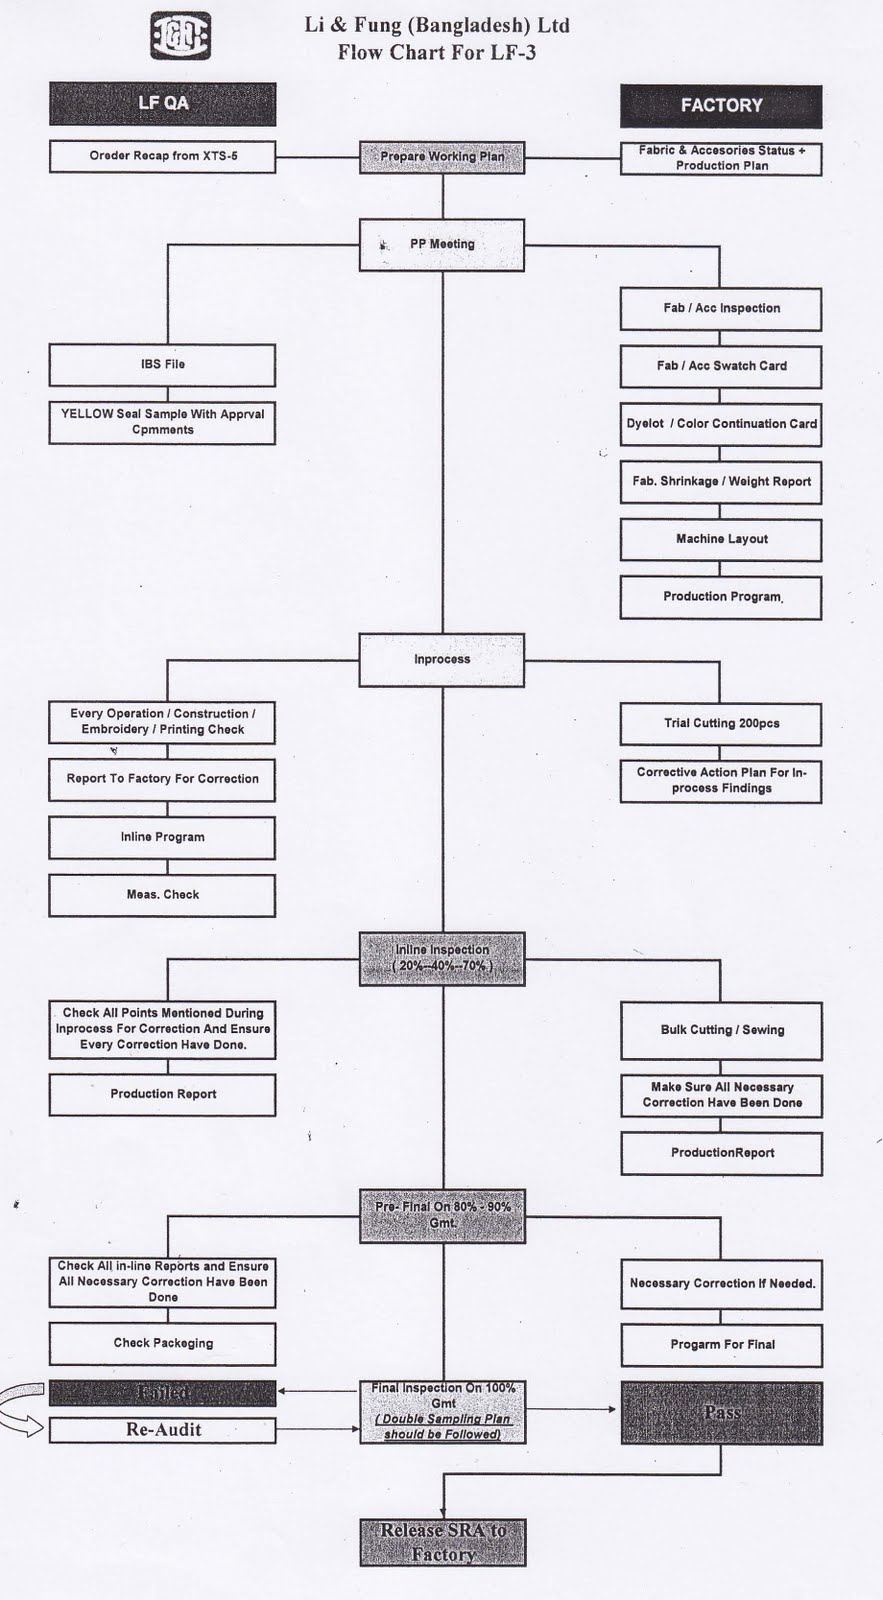 Azmol's Blog: Flow Chart of Quality department with Supplier